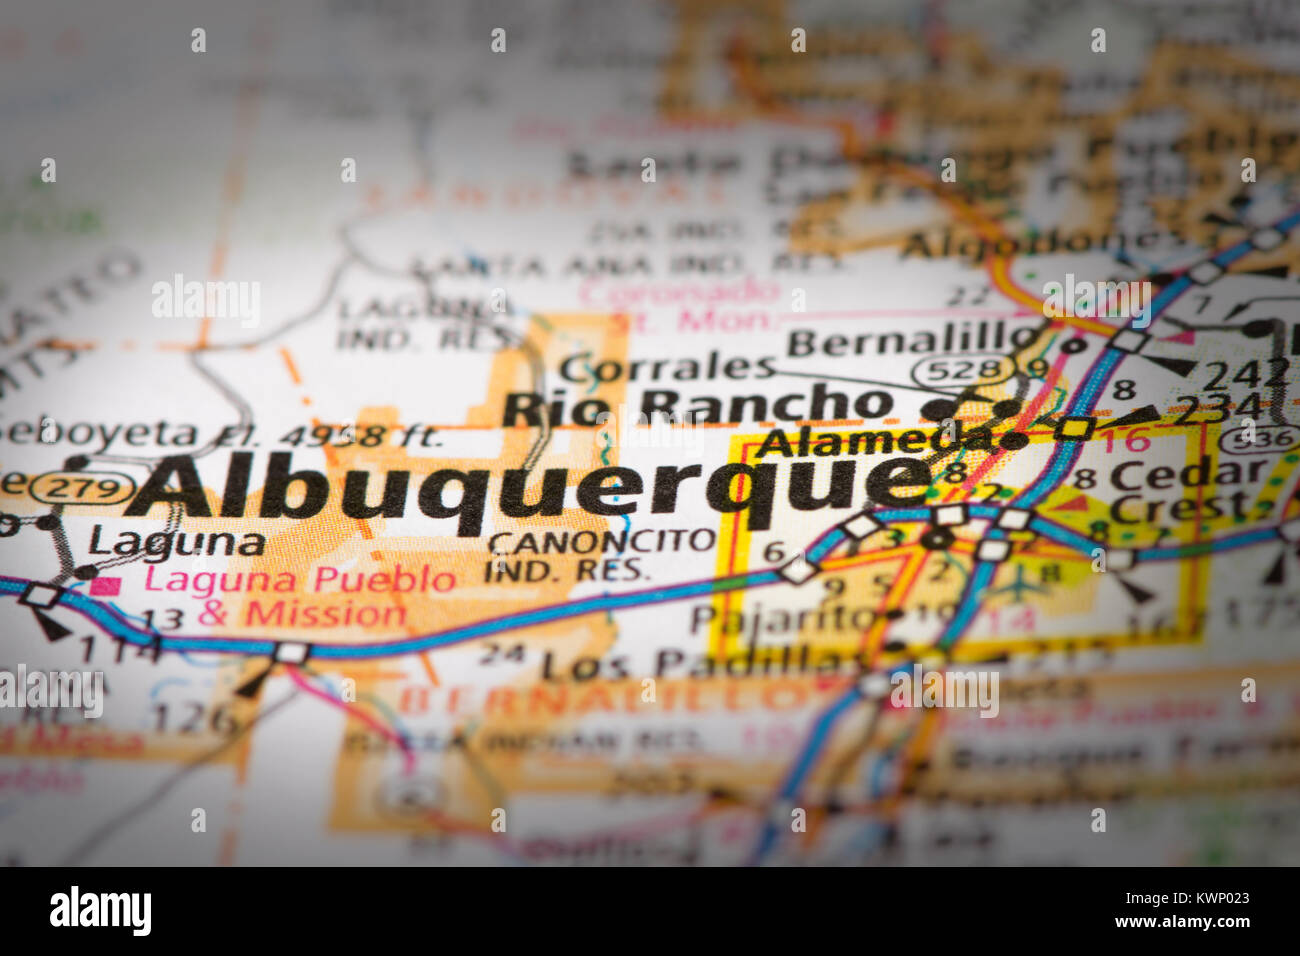 closeup of albuquerque new mexico on a road map of the united states